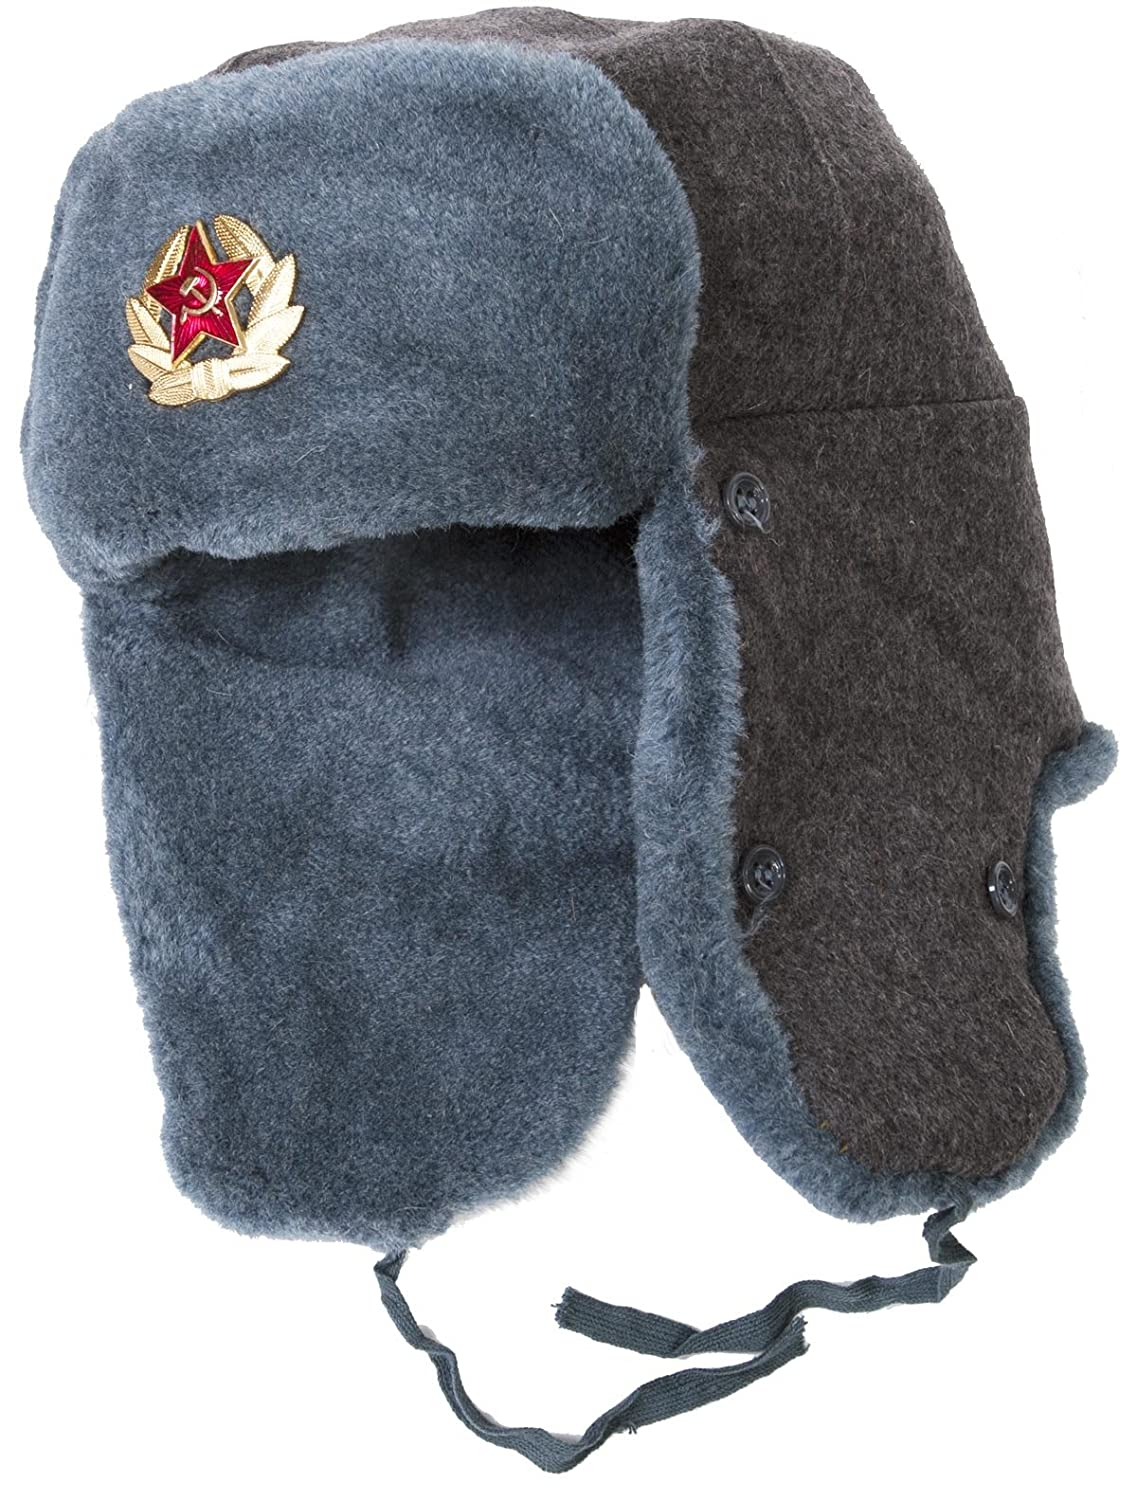 TEPEM Authentic Russian Army Ushanka Winter Hat-54 0ced1e6d30a